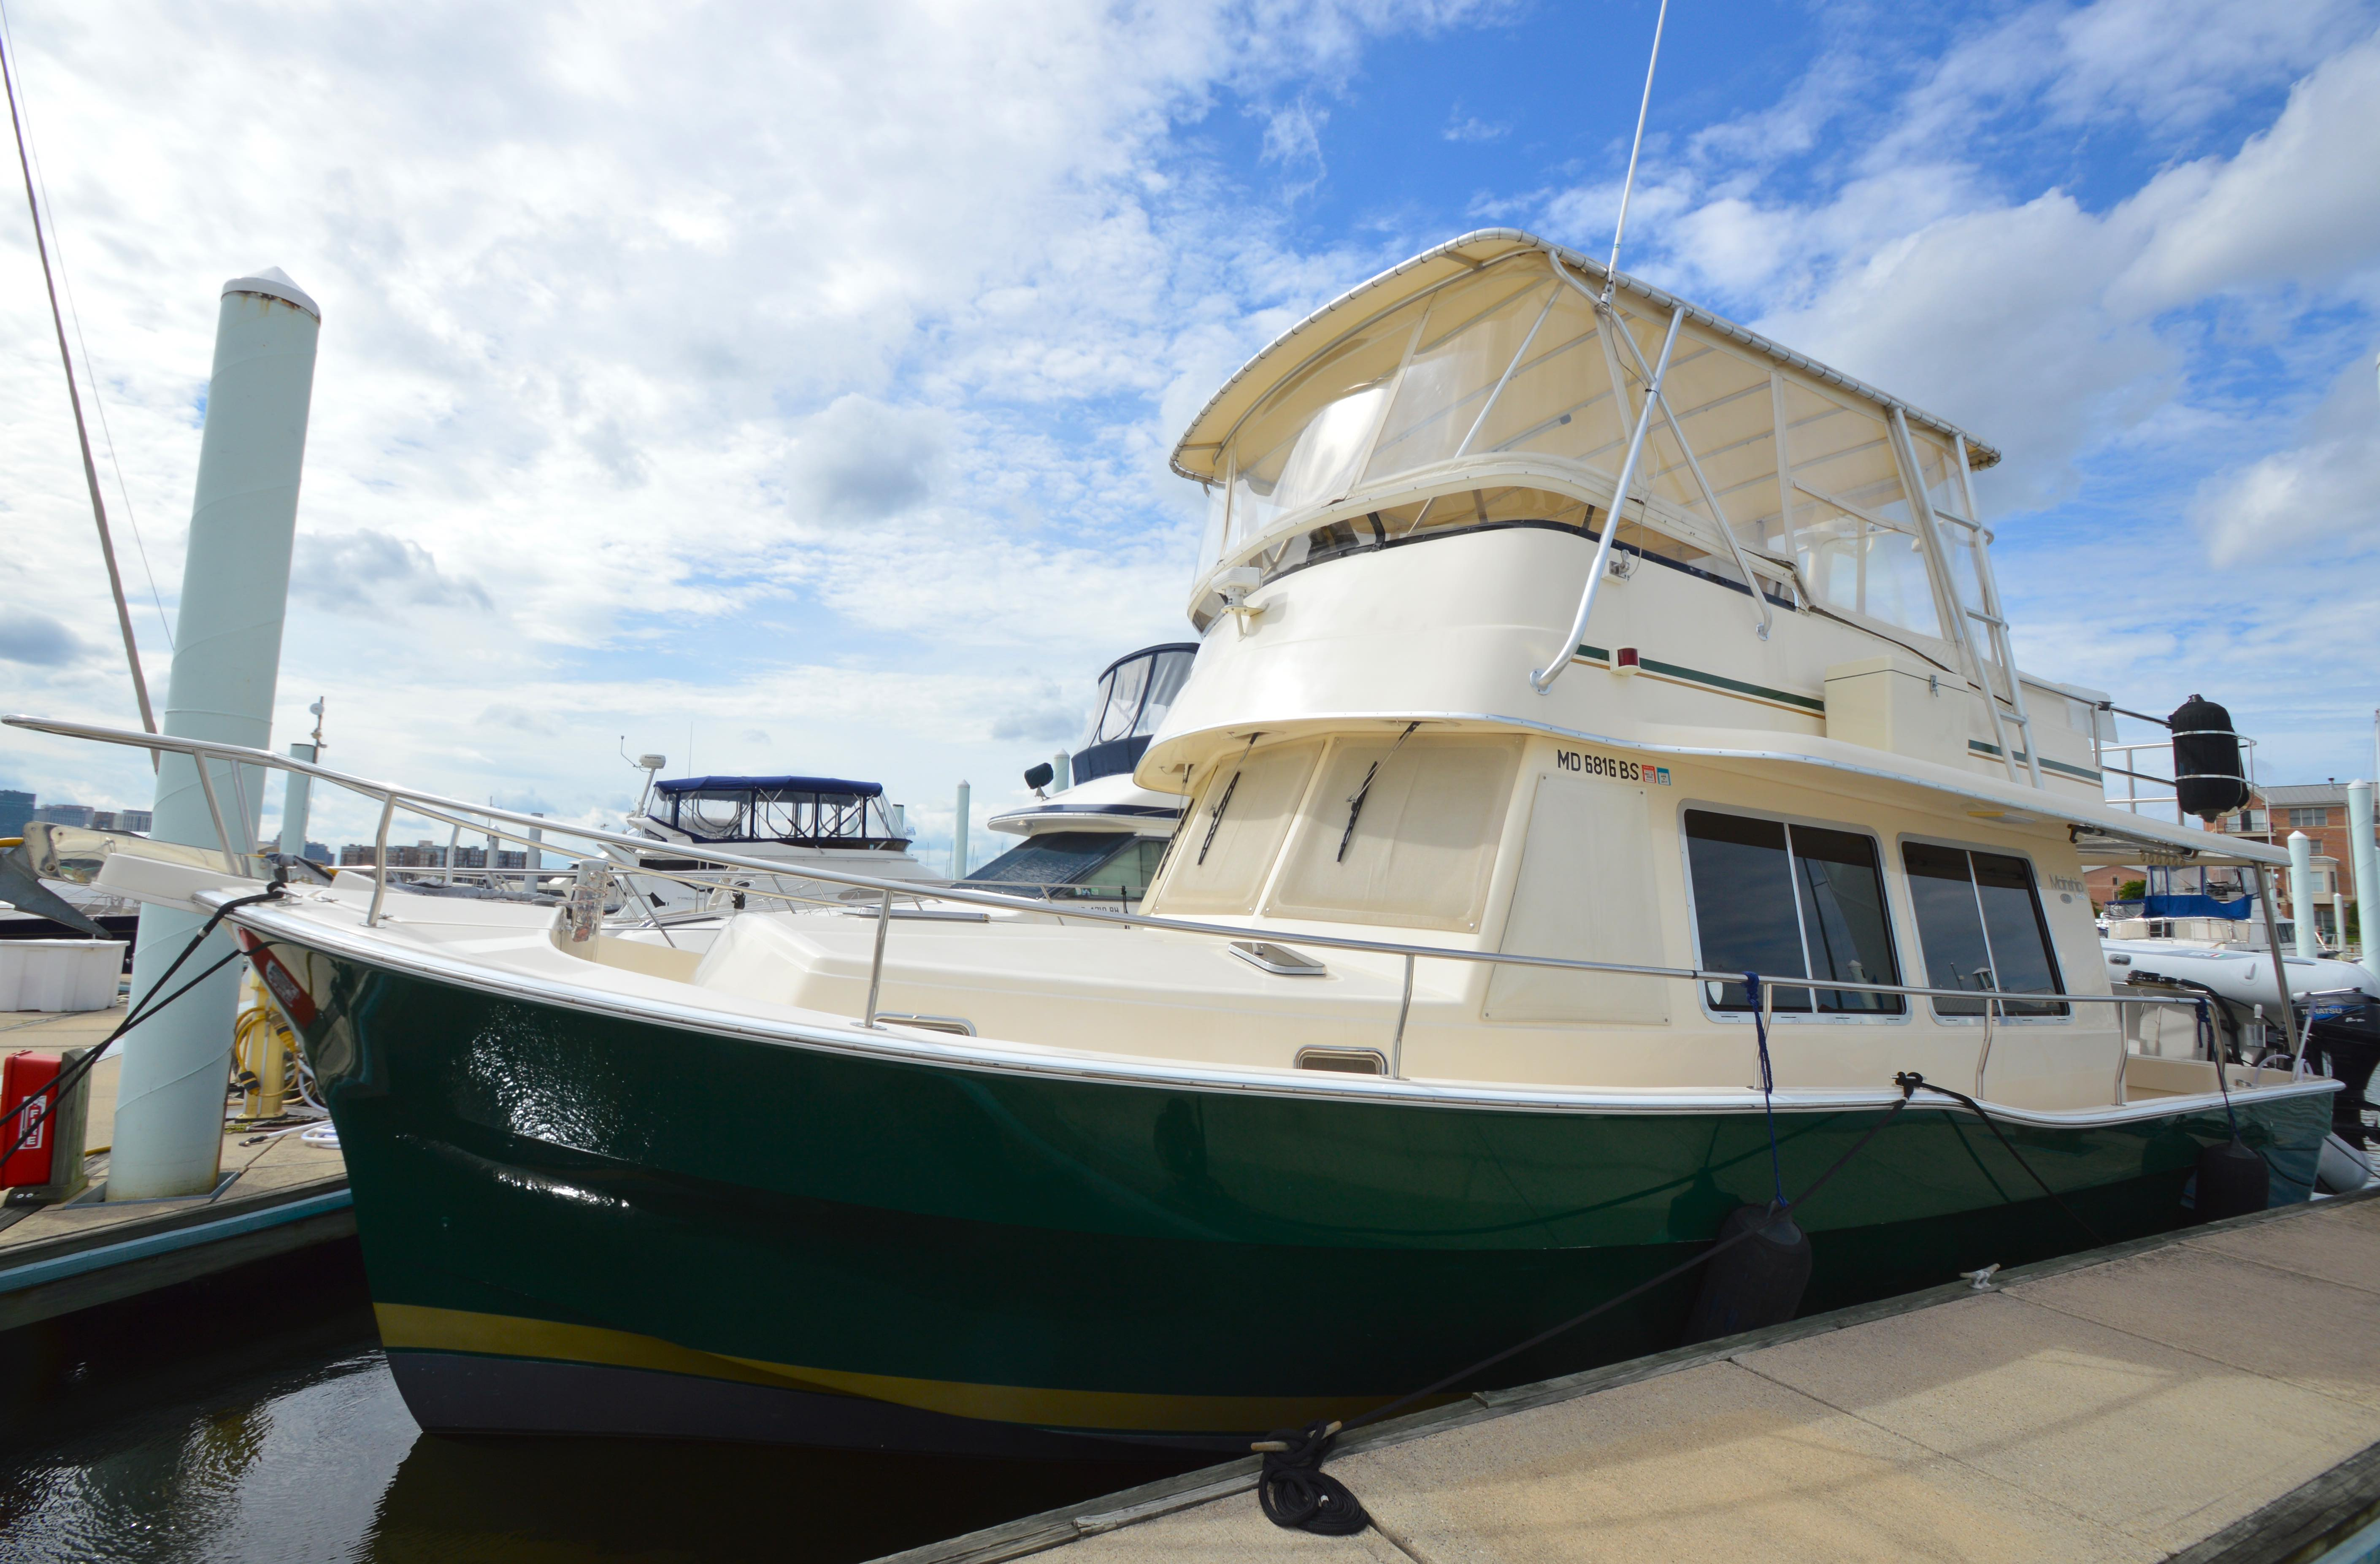 Mainship boats for sale in Baltimore - Boat Trader